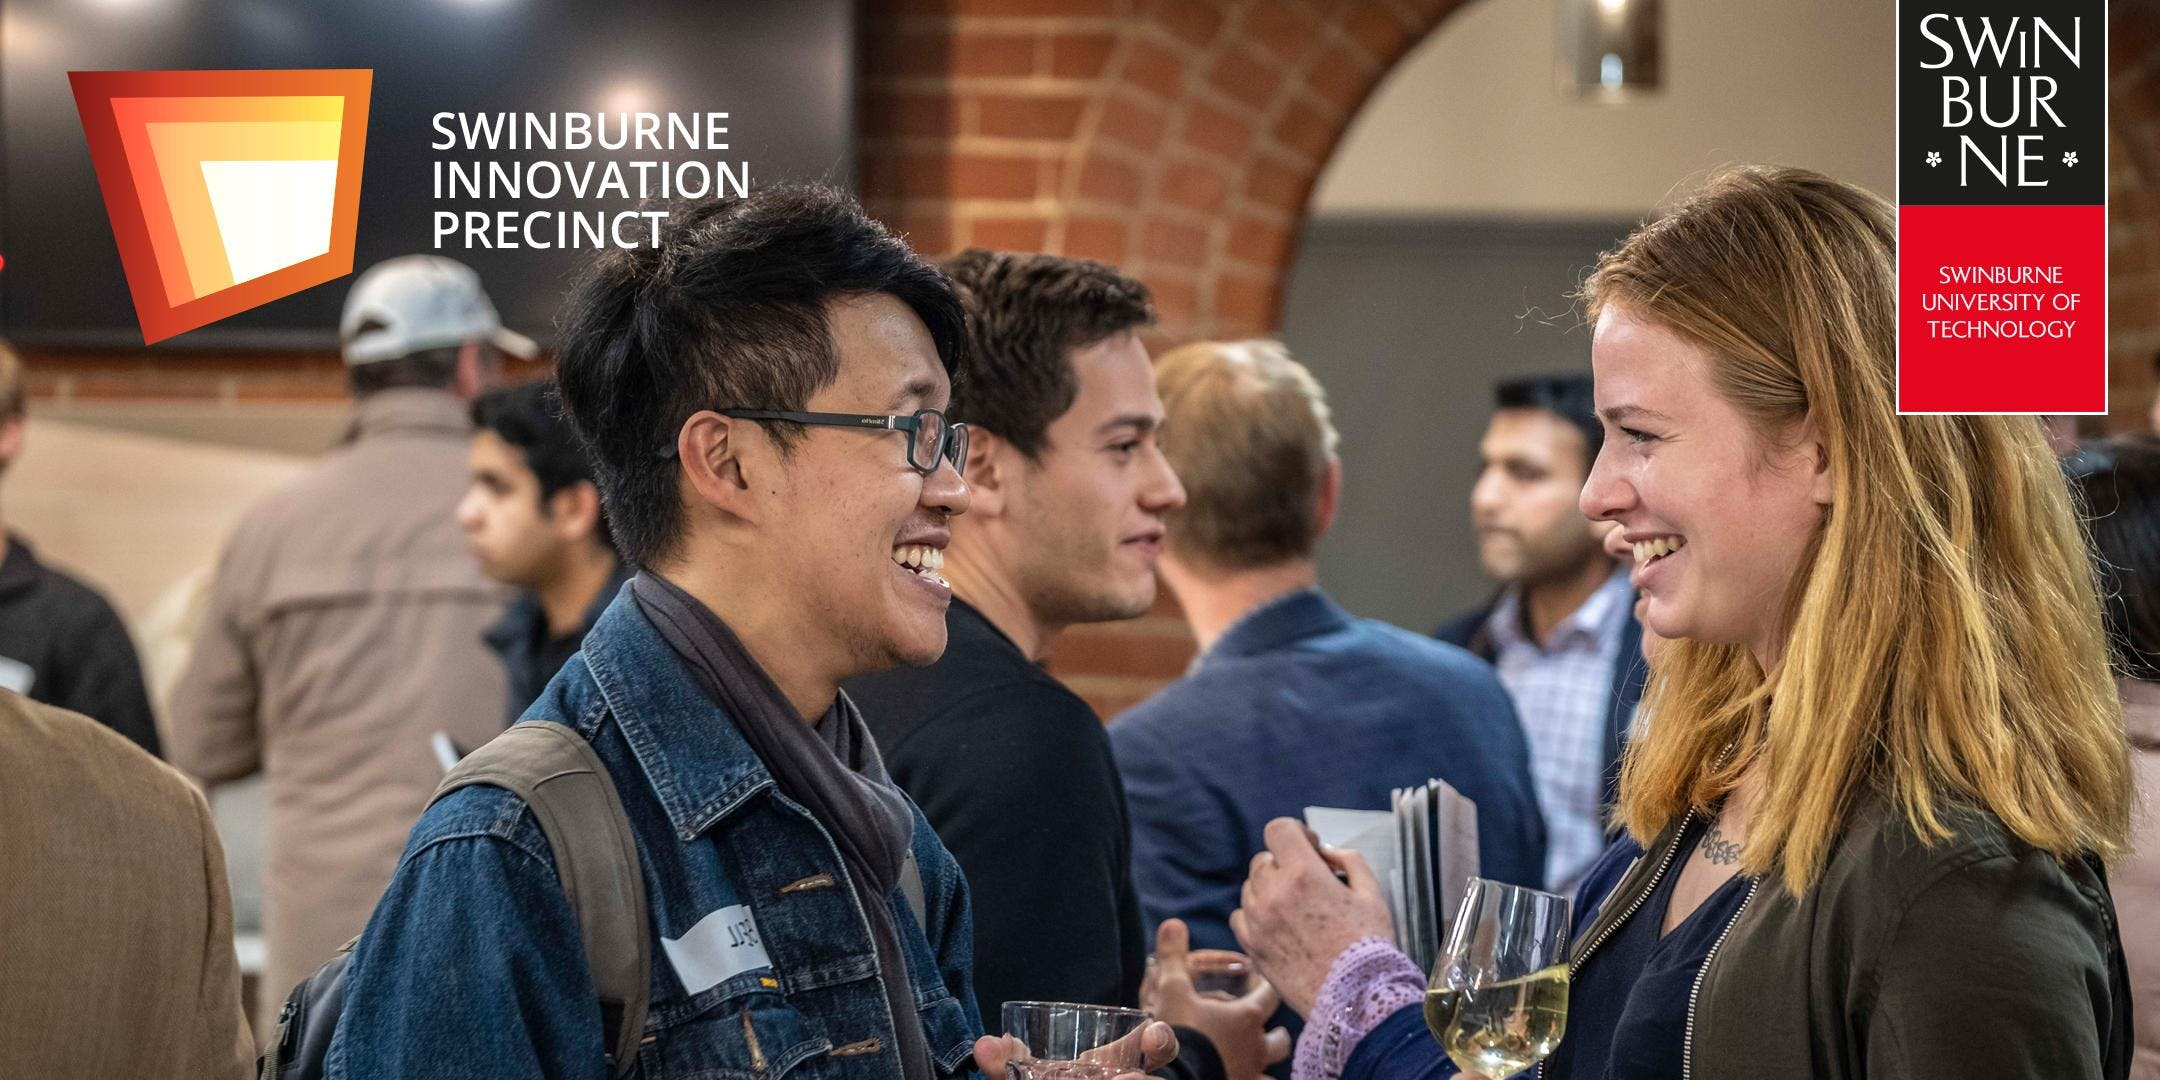 Innovation Precinct Tour & Startup Showcase